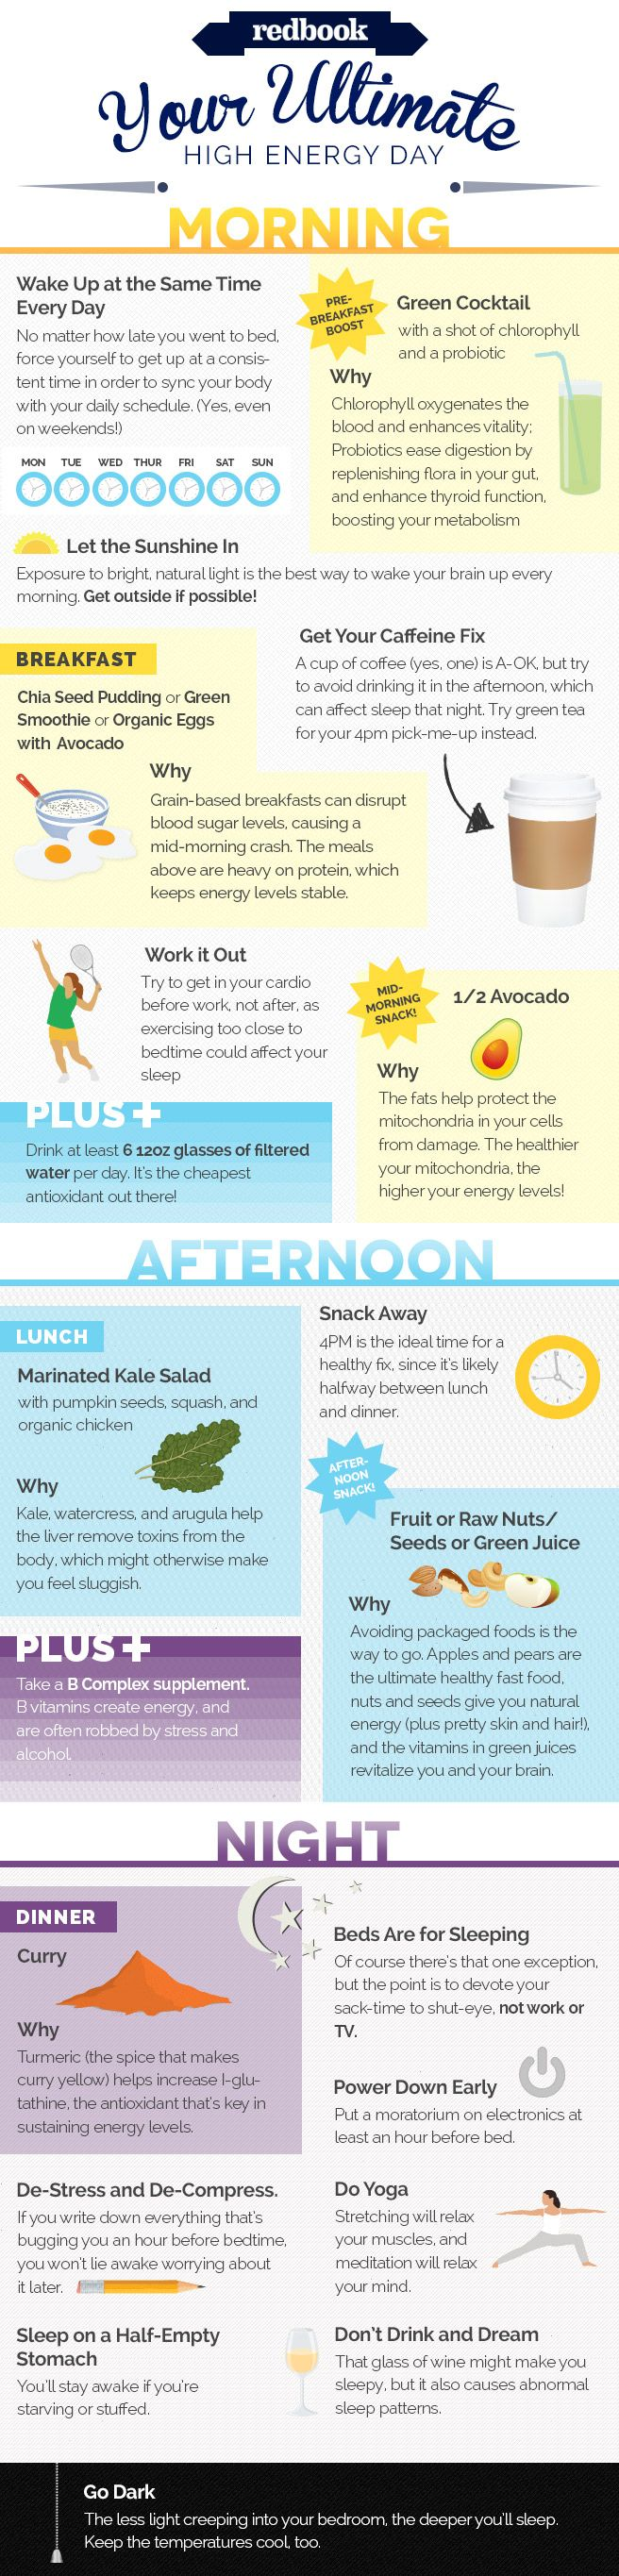 Good habits to get into to keep energy up and good snacks to balance out the day.